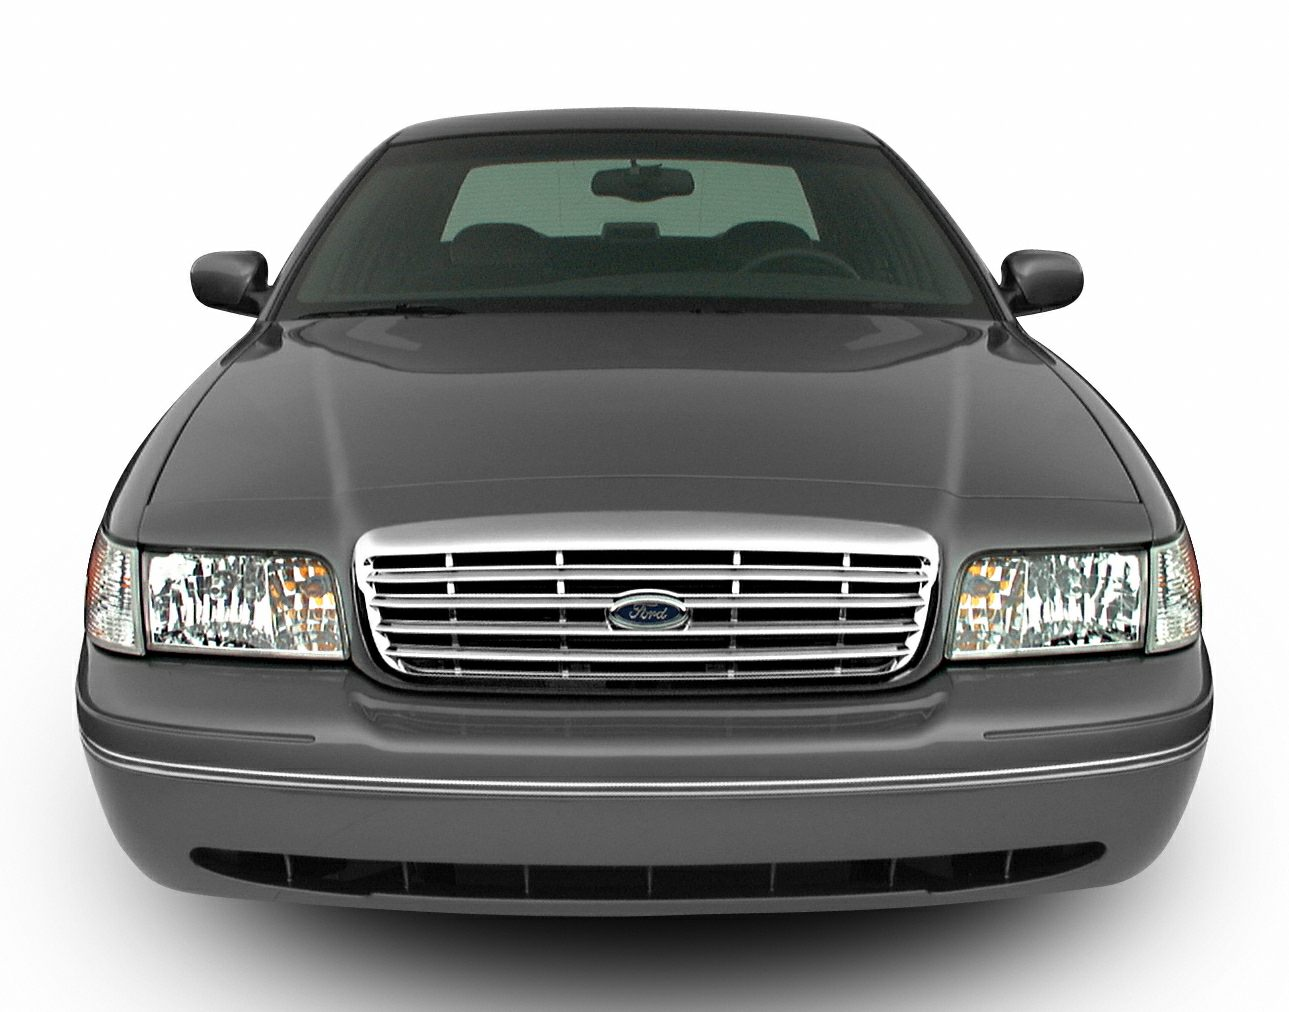 2000 ford crown victoria lx 4dr sedan pictures. Black Bedroom Furniture Sets. Home Design Ideas